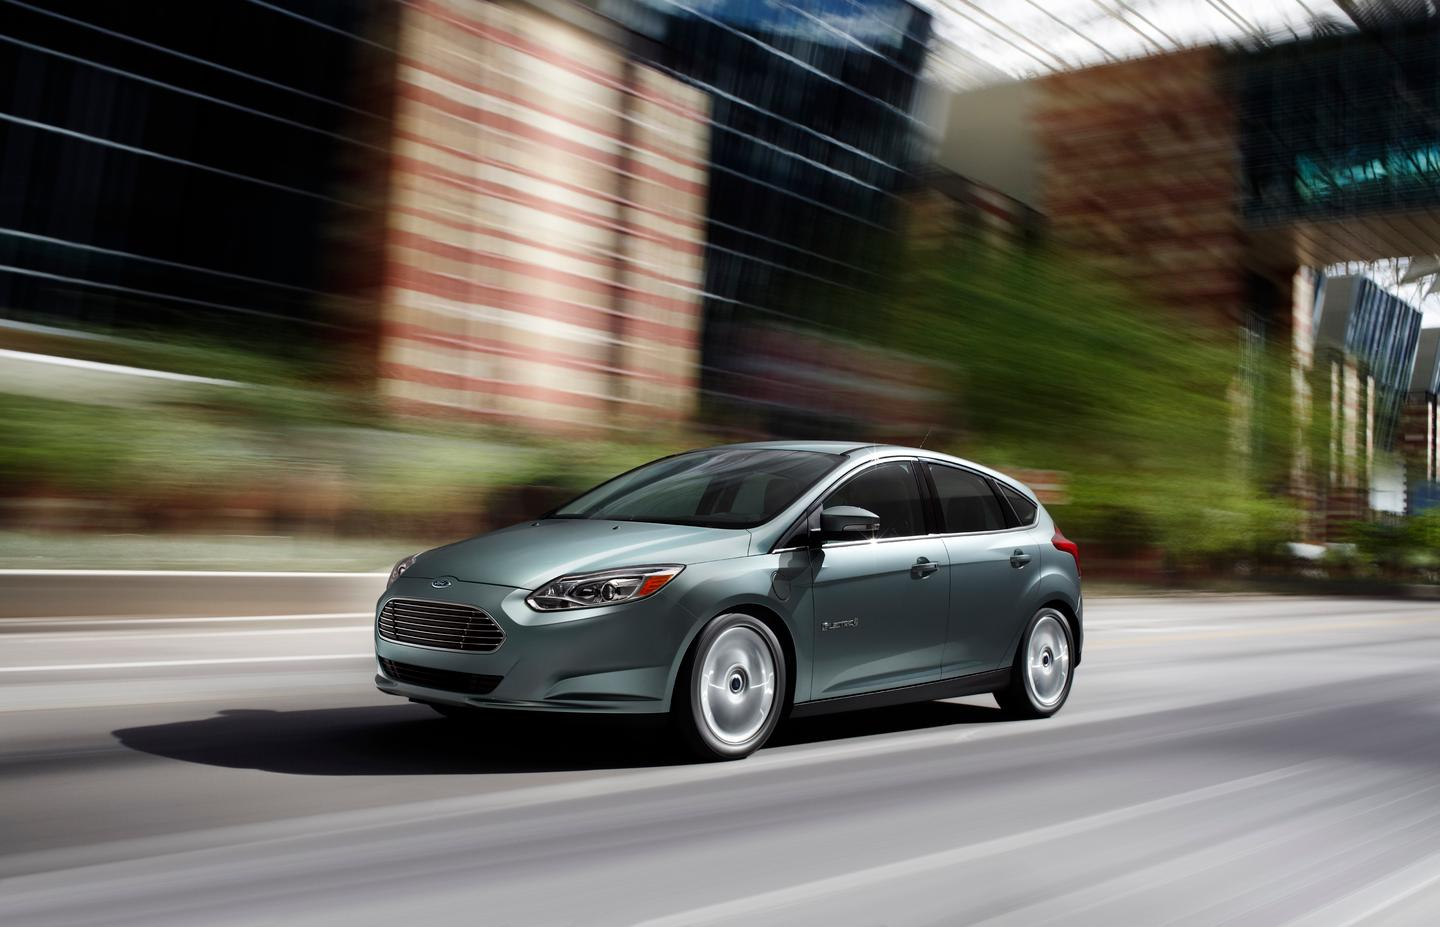 The Ford Focus Electric charges in half the time of the Nissan Leaf